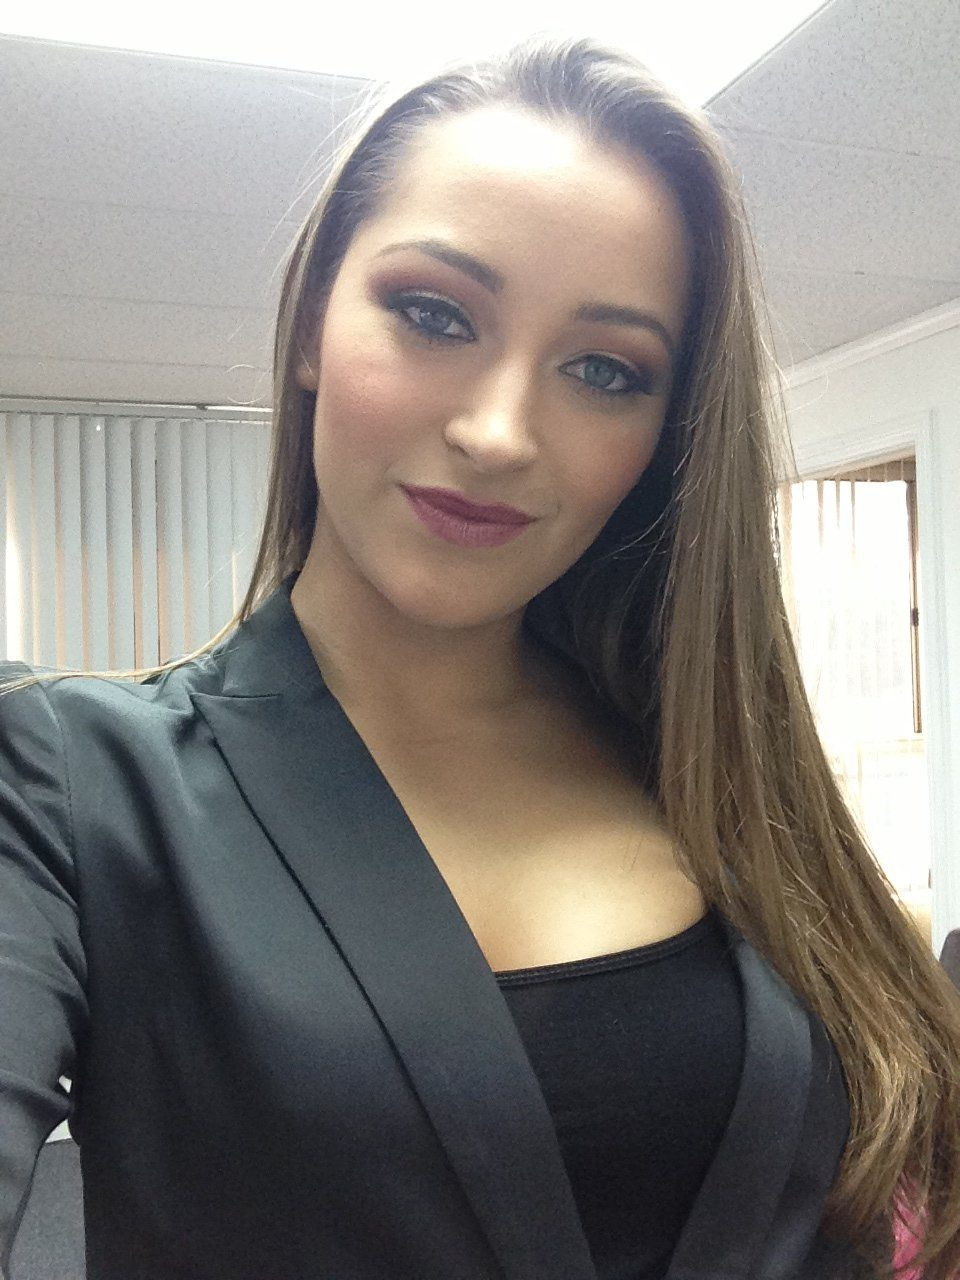 Dani Daniels Wallpaper download 52   cerc ugorg 960x1280